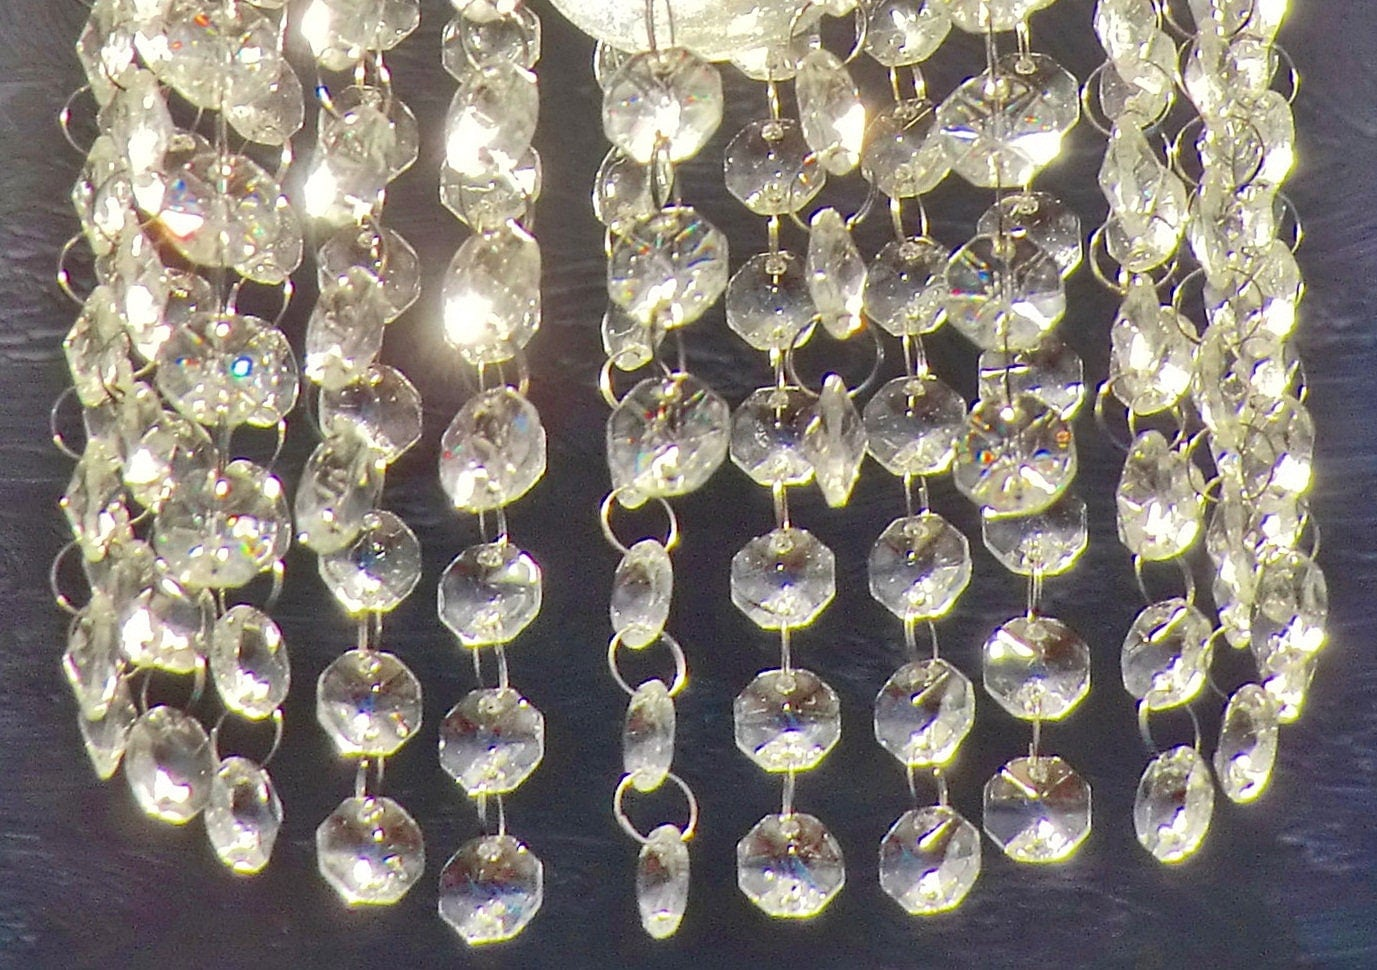 14mm Chandelier Drops Parts Clear Cut Glass Crystals Droplets ...